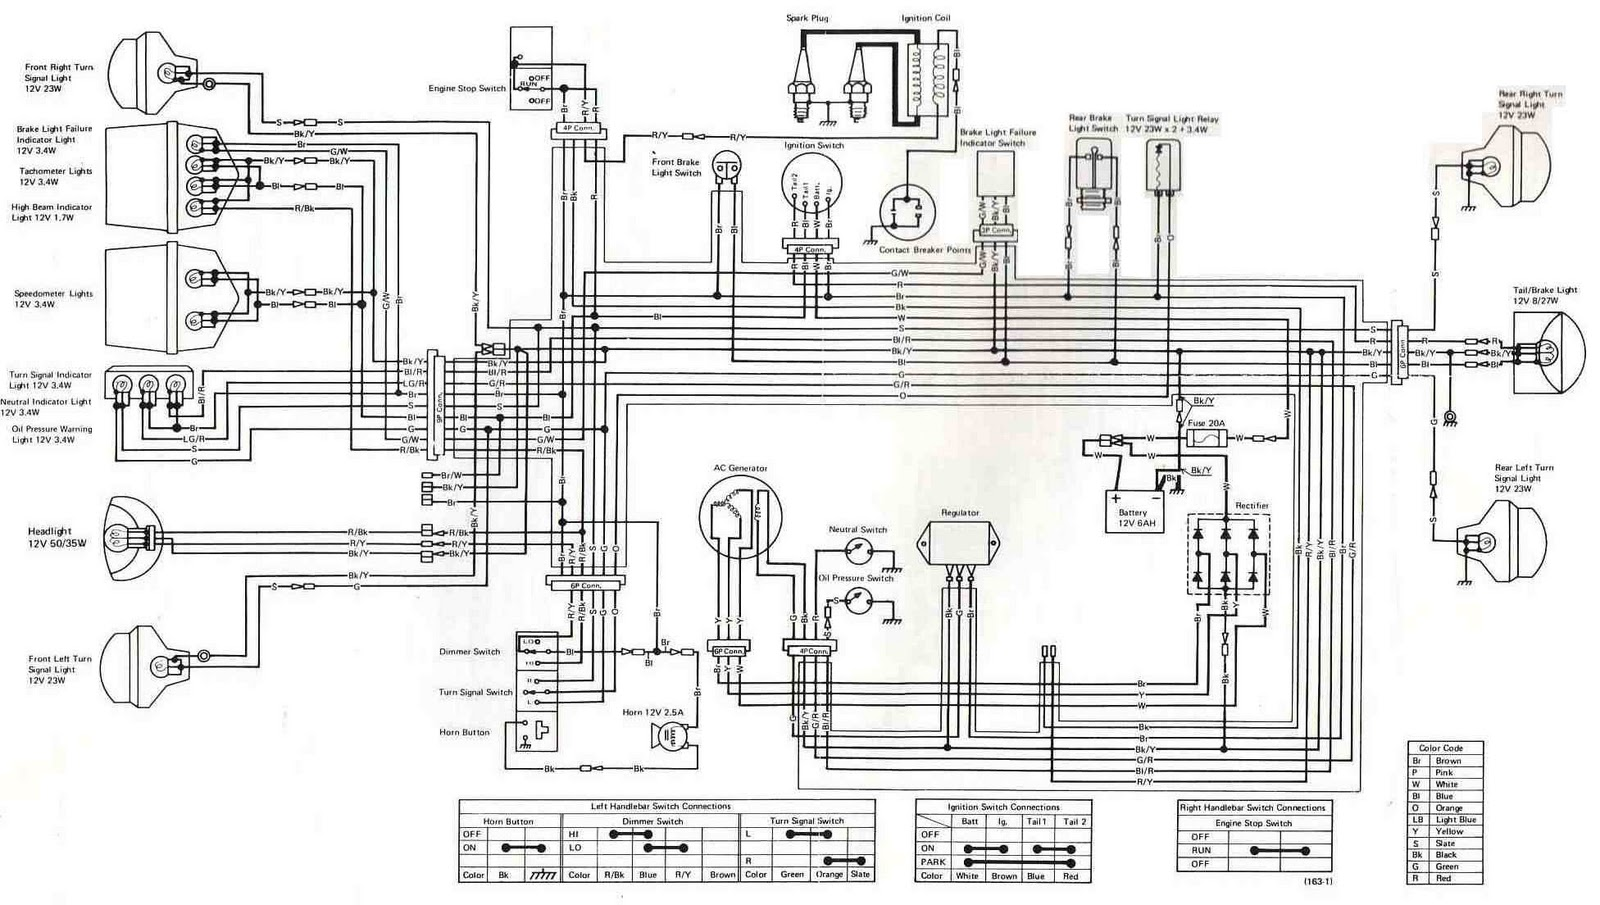 Kawasaki Electrical Diagrams About Wiring Diagram Kawasaki Ninja ZX750  Kawasaki Ninja Zx12r Wiring Diagram